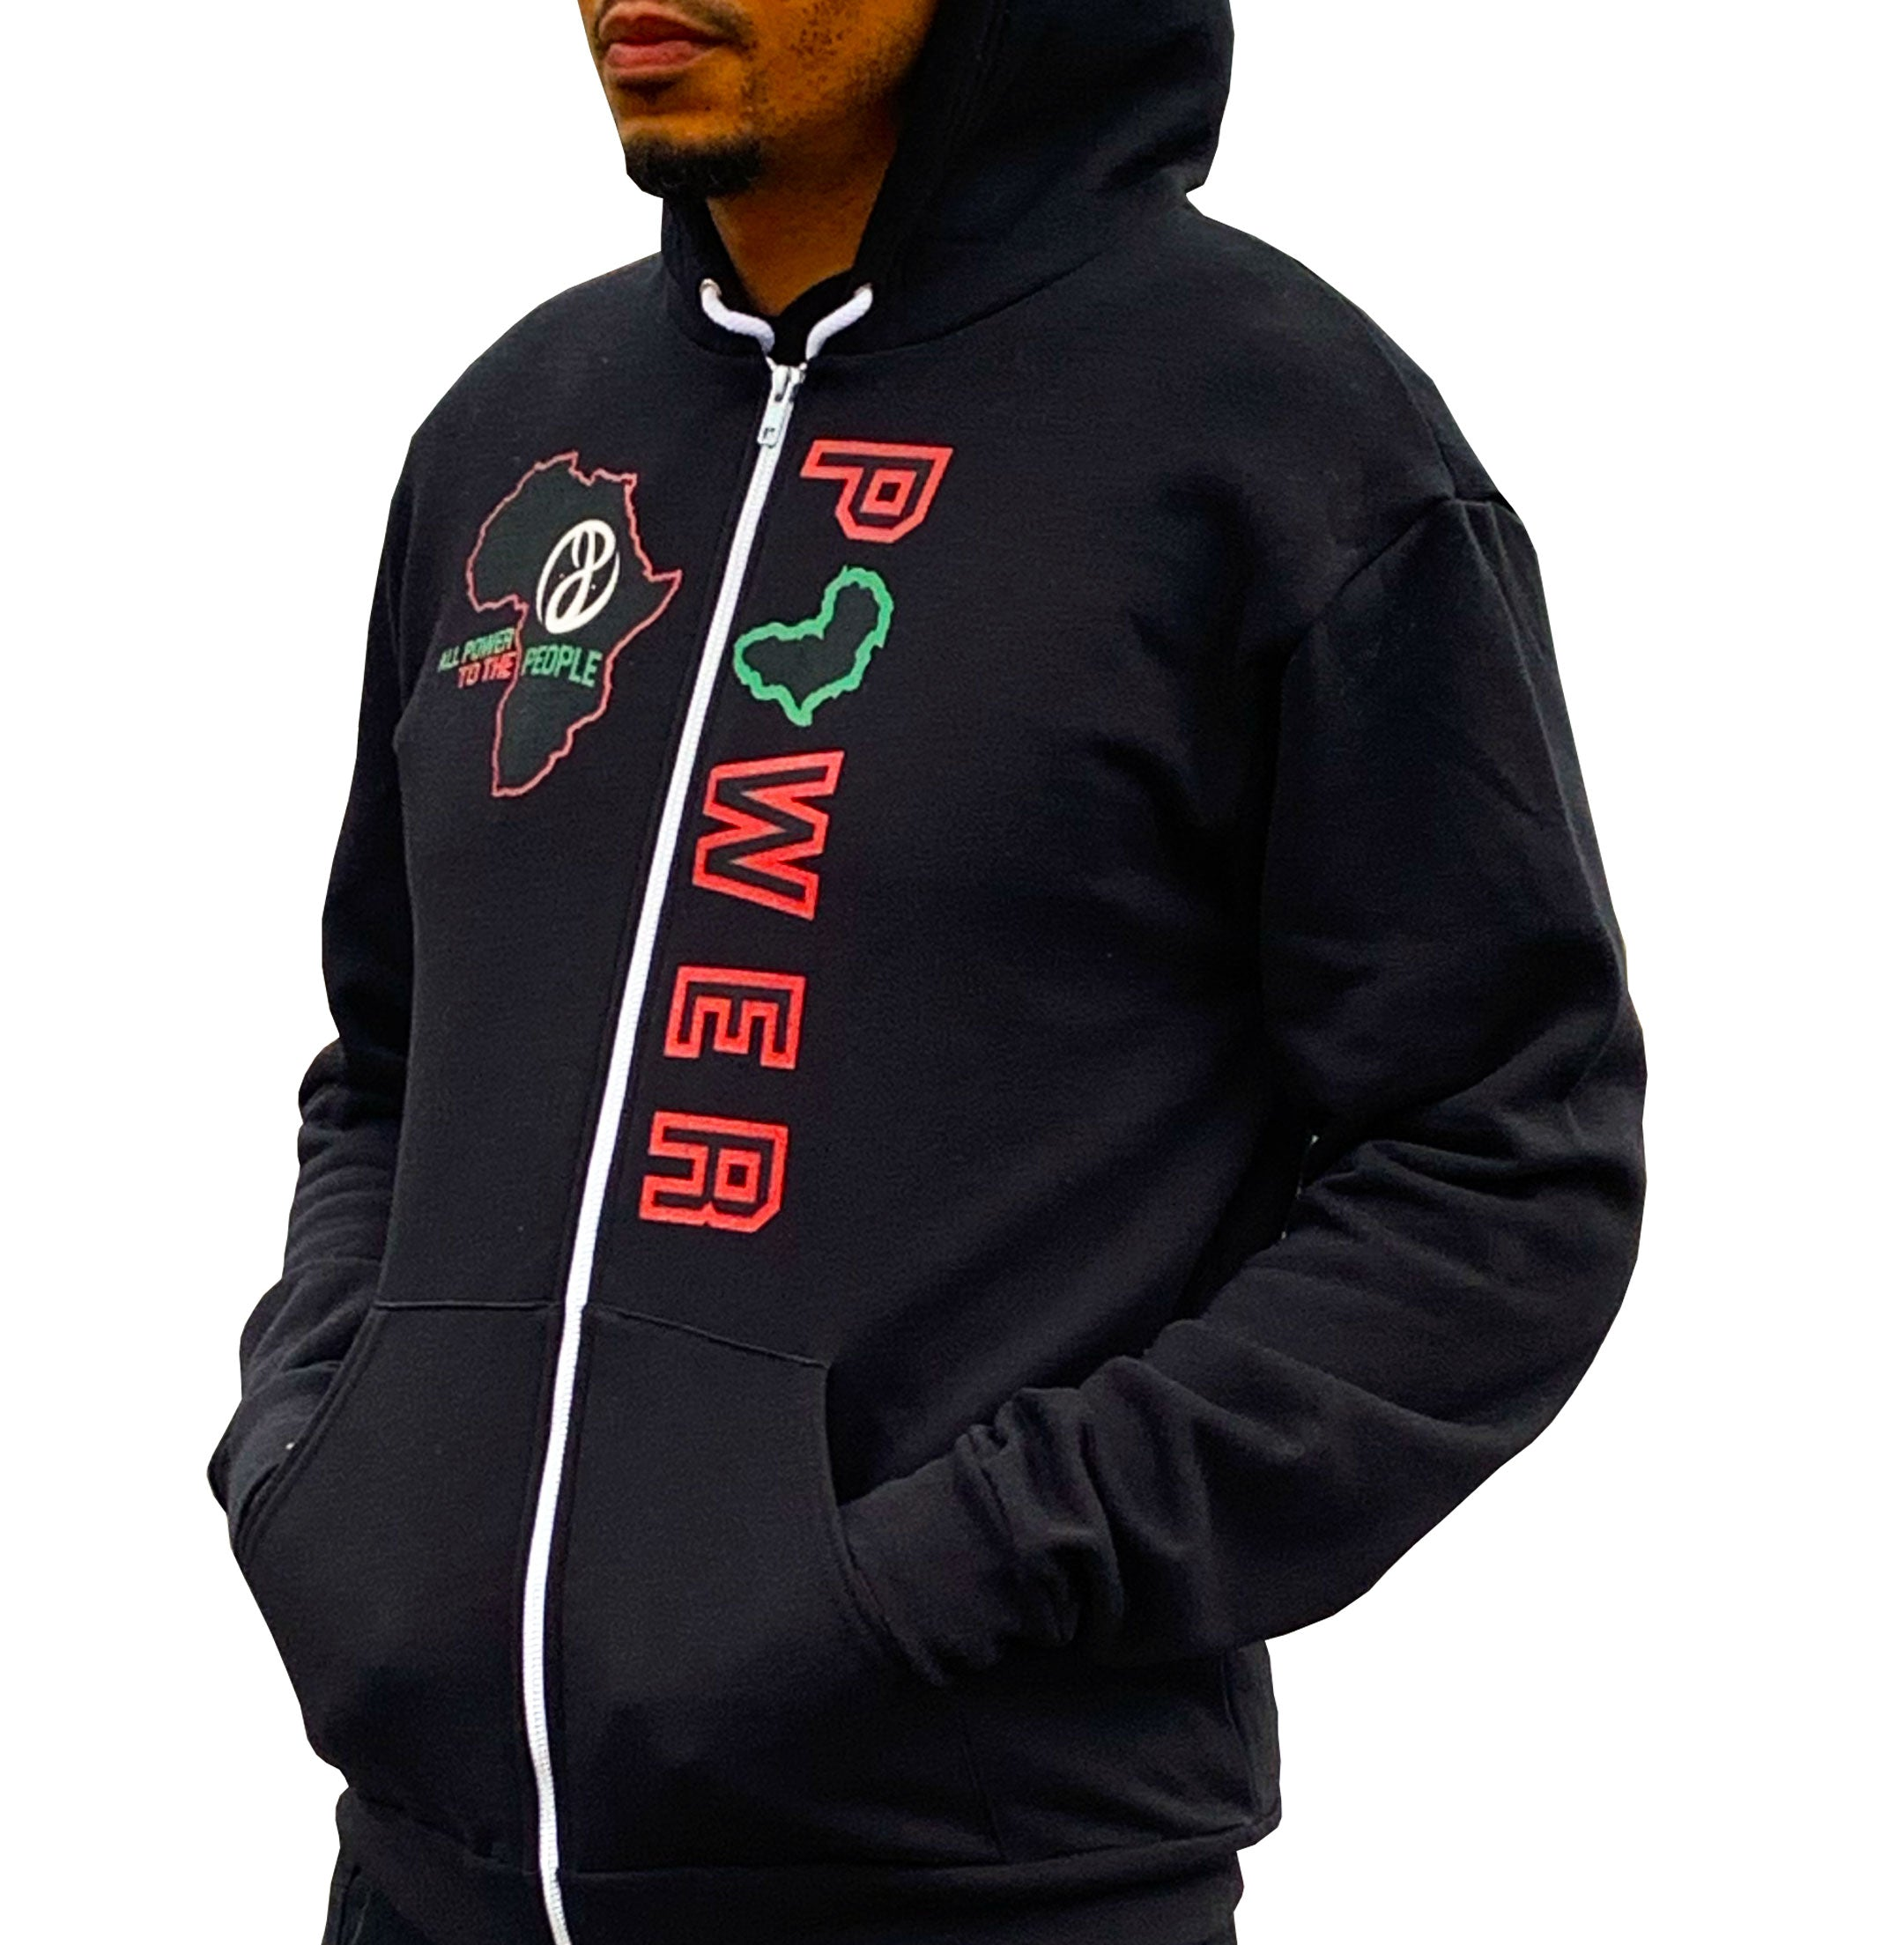 Black Unity Zip Up Hoodie